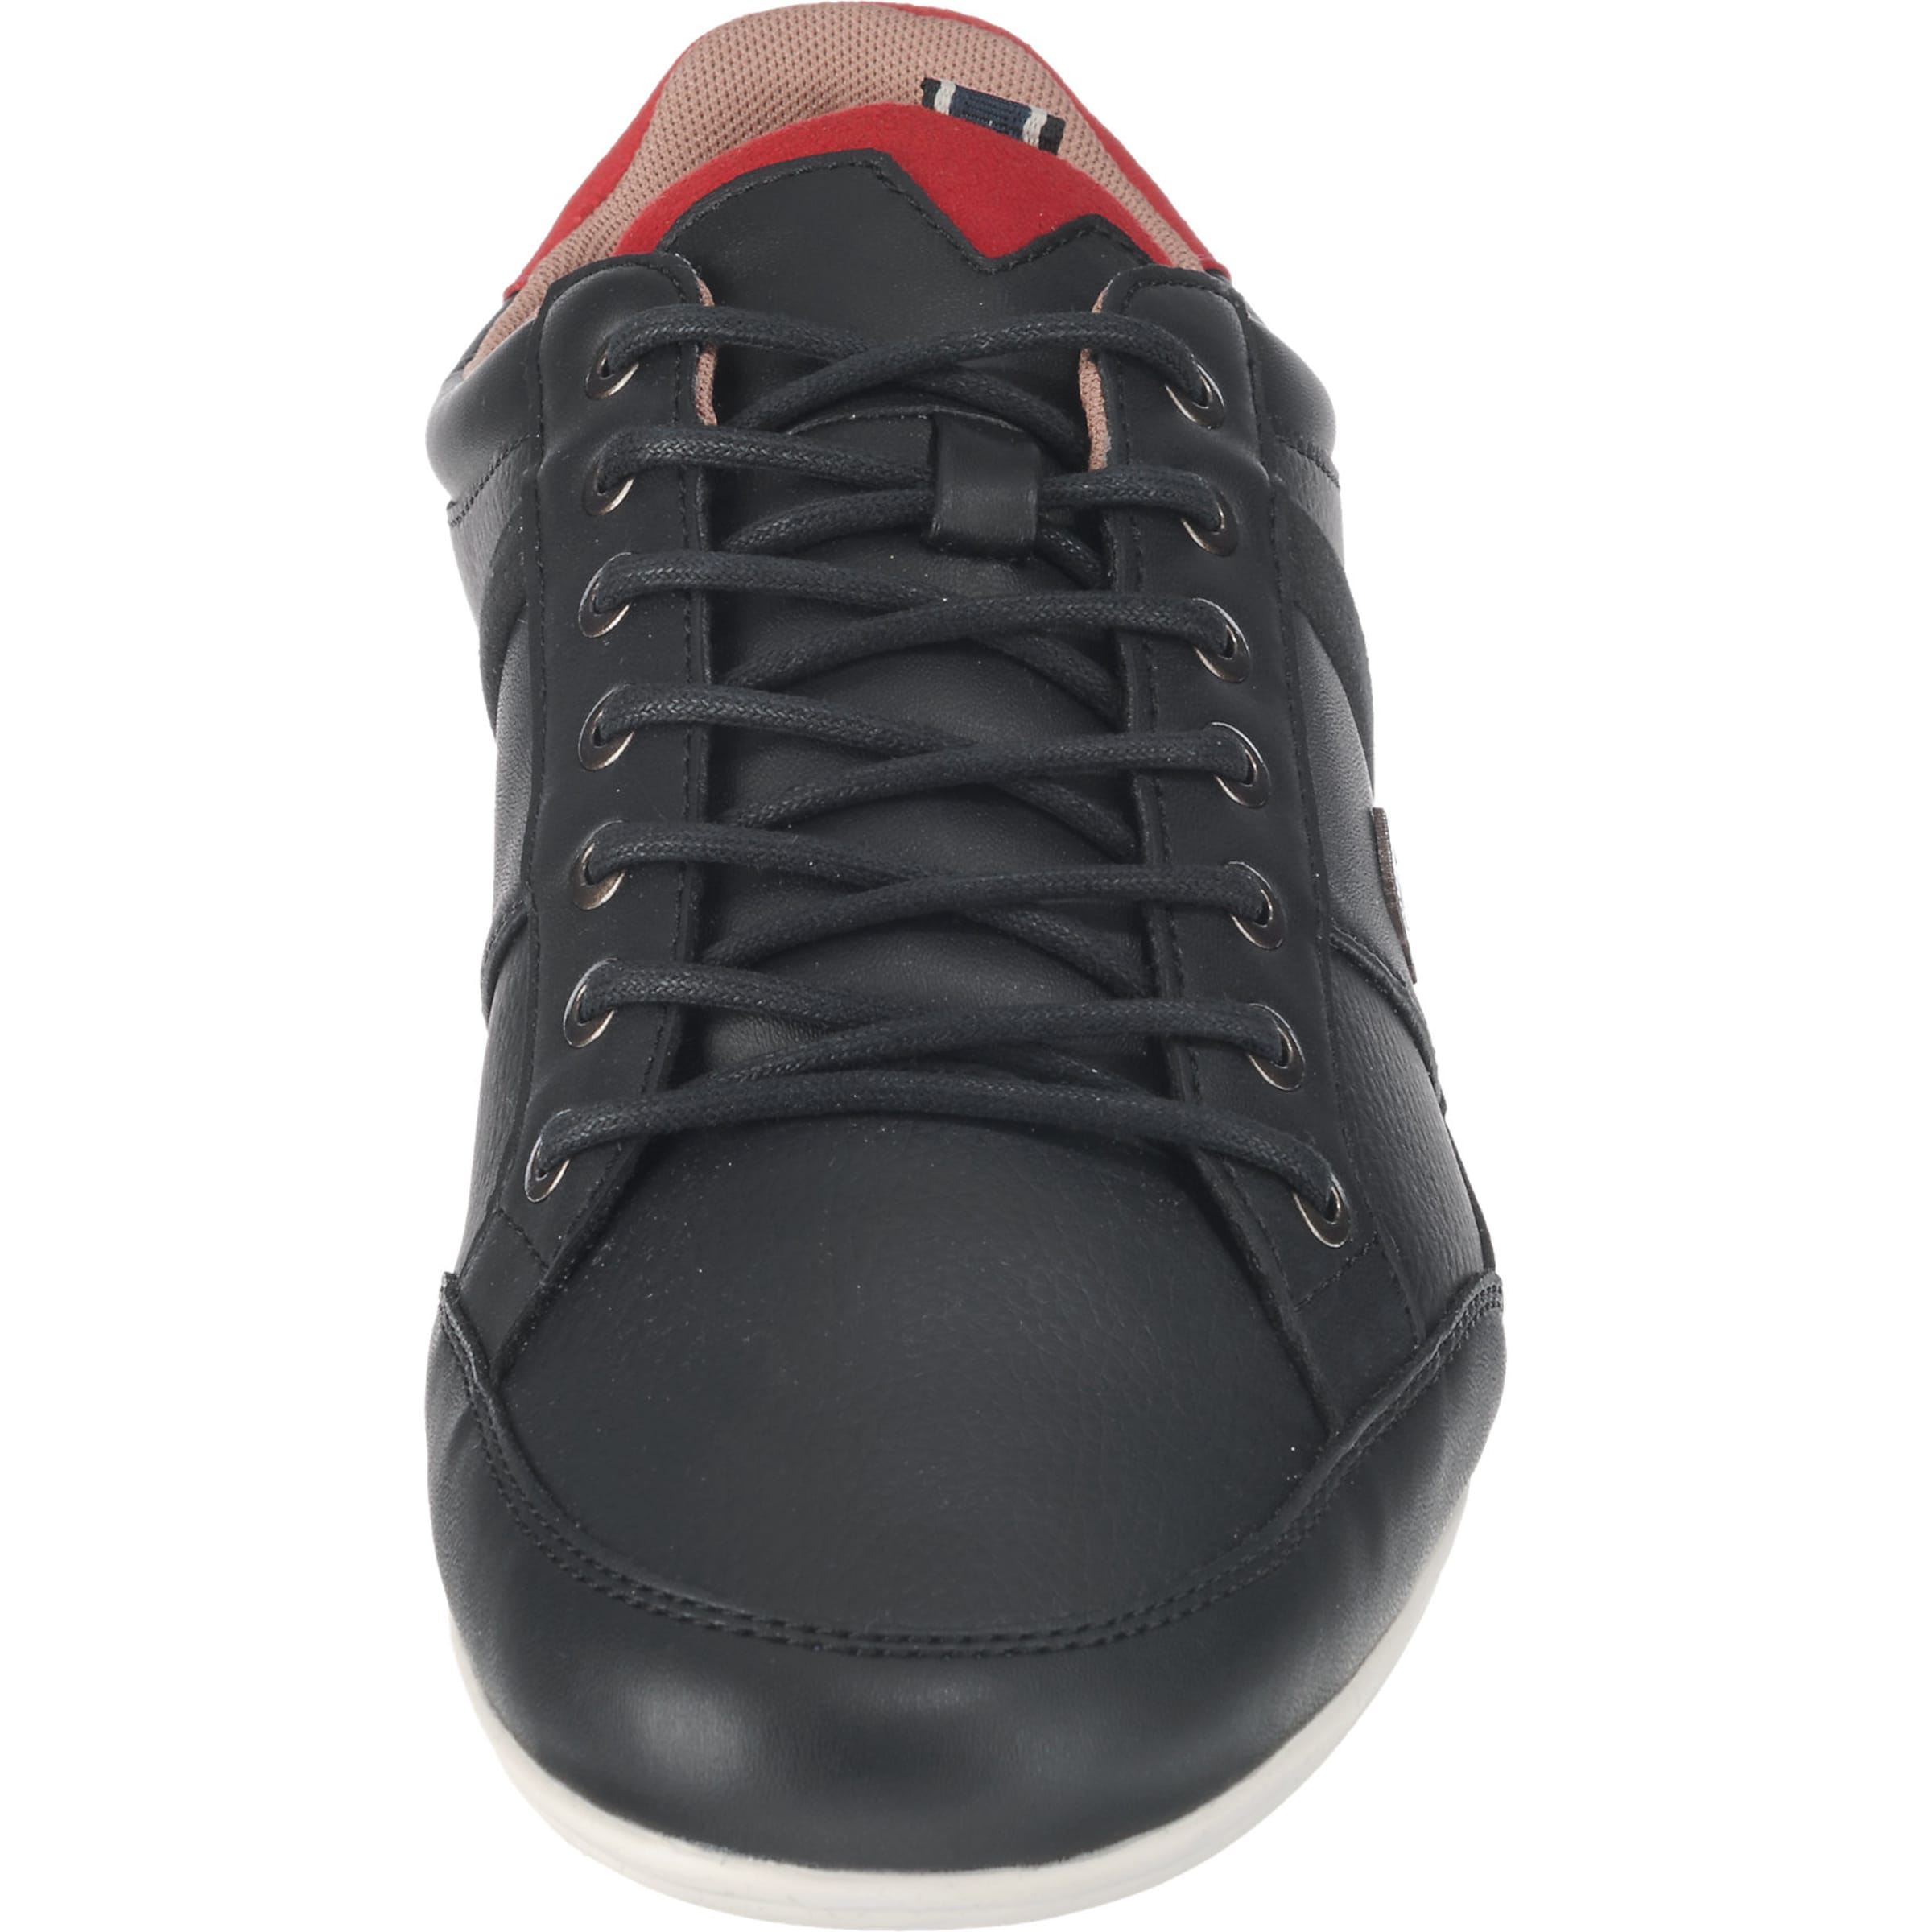 LACOSTE Chaymon 118 2 Cam Cam Cam Turnschuhe Synthetik Bequem, gut aussehend 061bfd